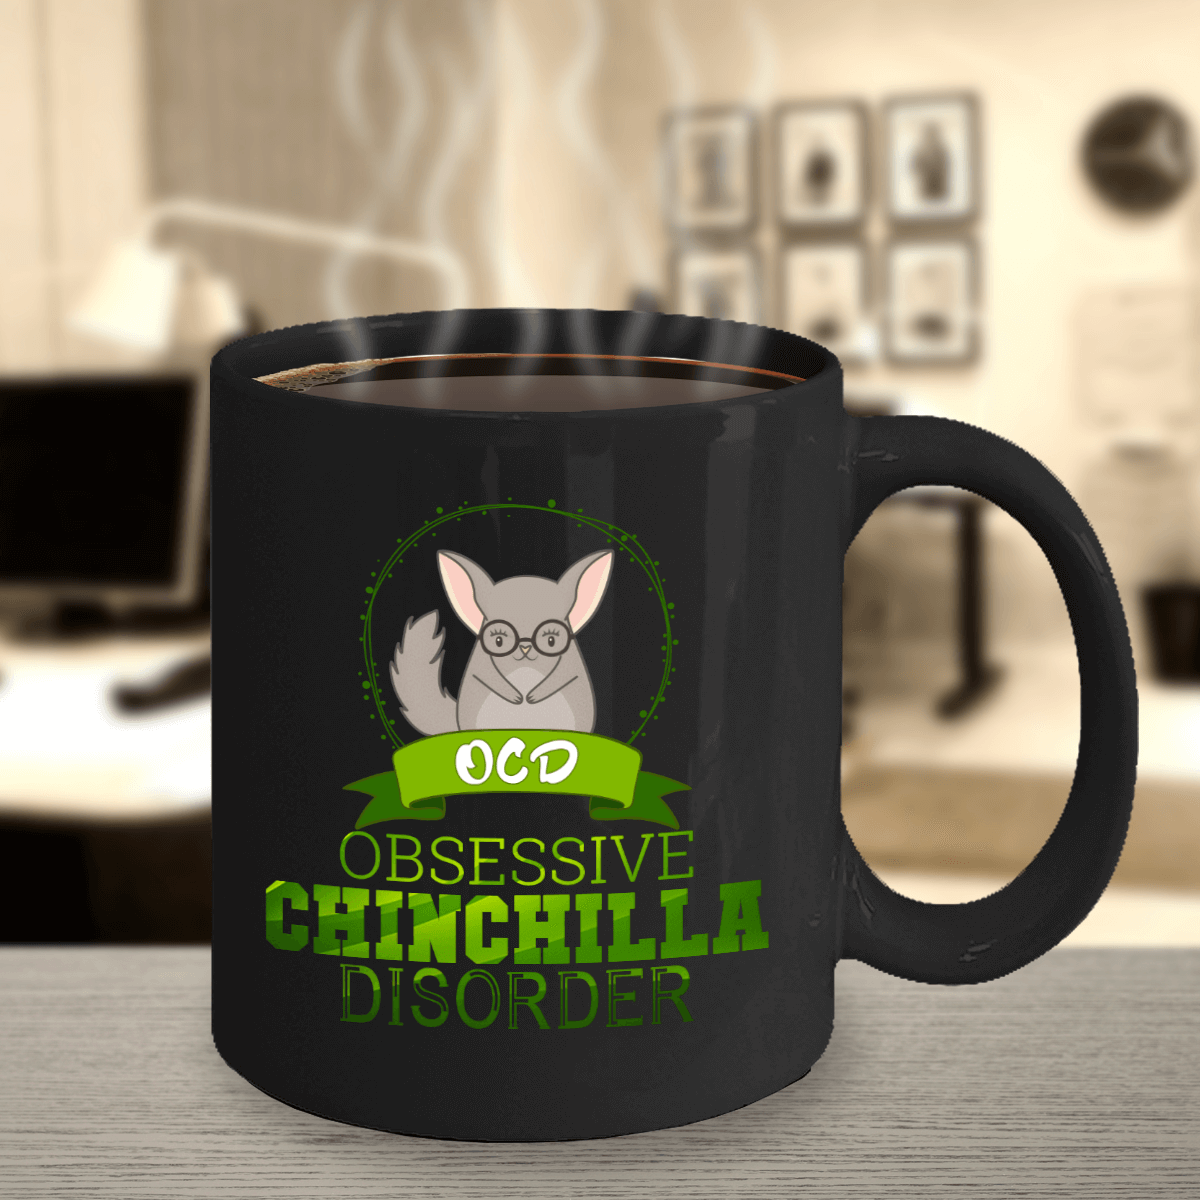 Obsessive Chinchilla Disorder Black Ceramic Mug (Green Design)